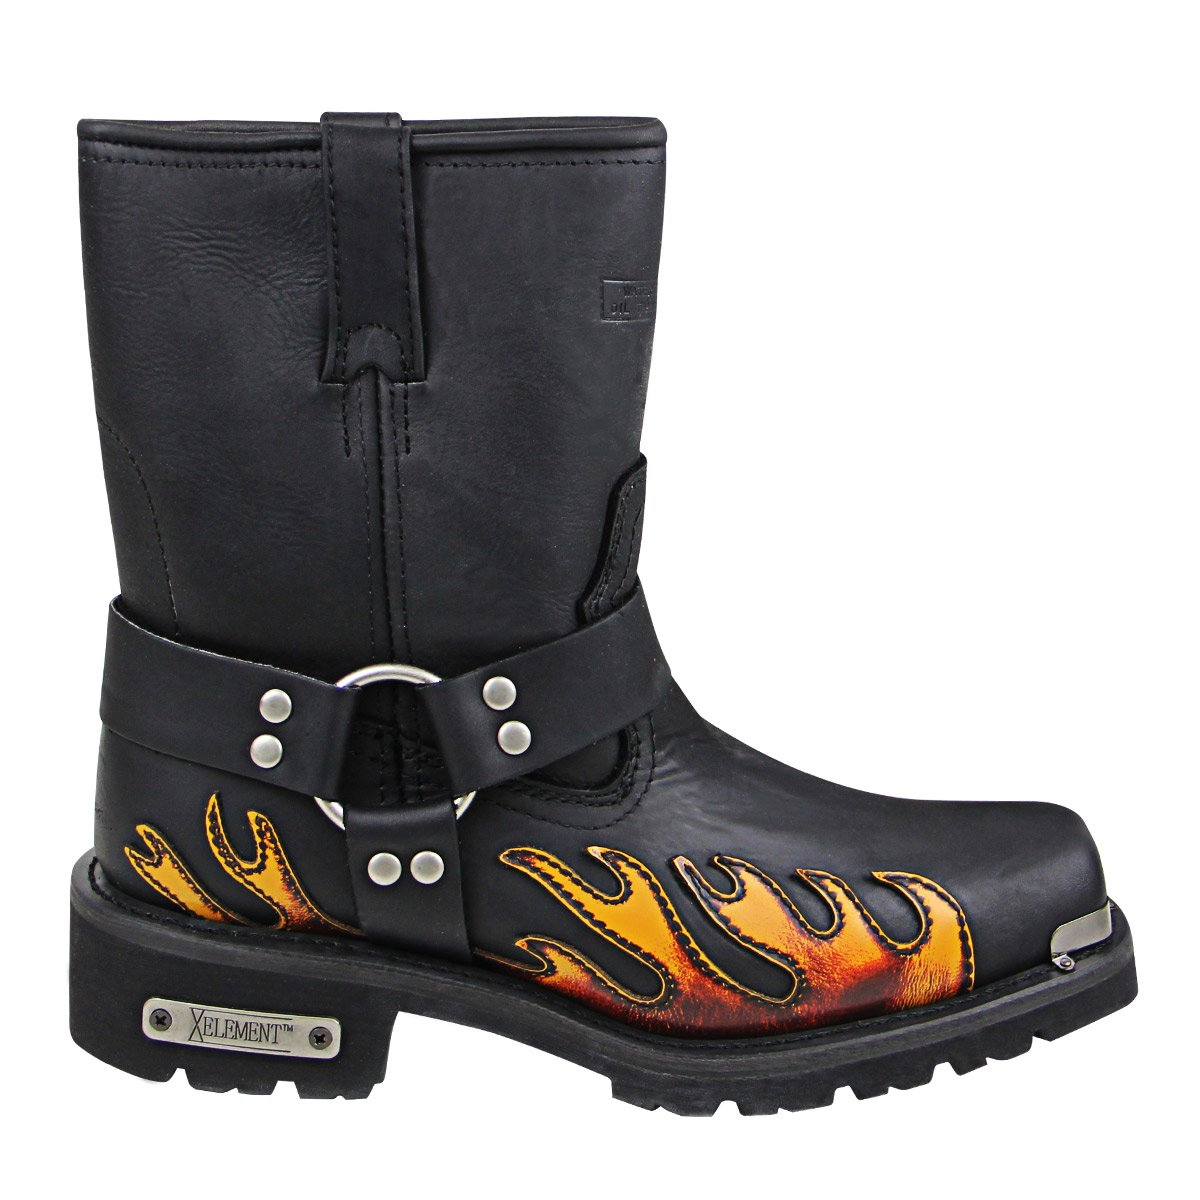 ceb1eb099ce Xelement 1490 Mens Black Harness Motorcycle Boots with Flame - 10